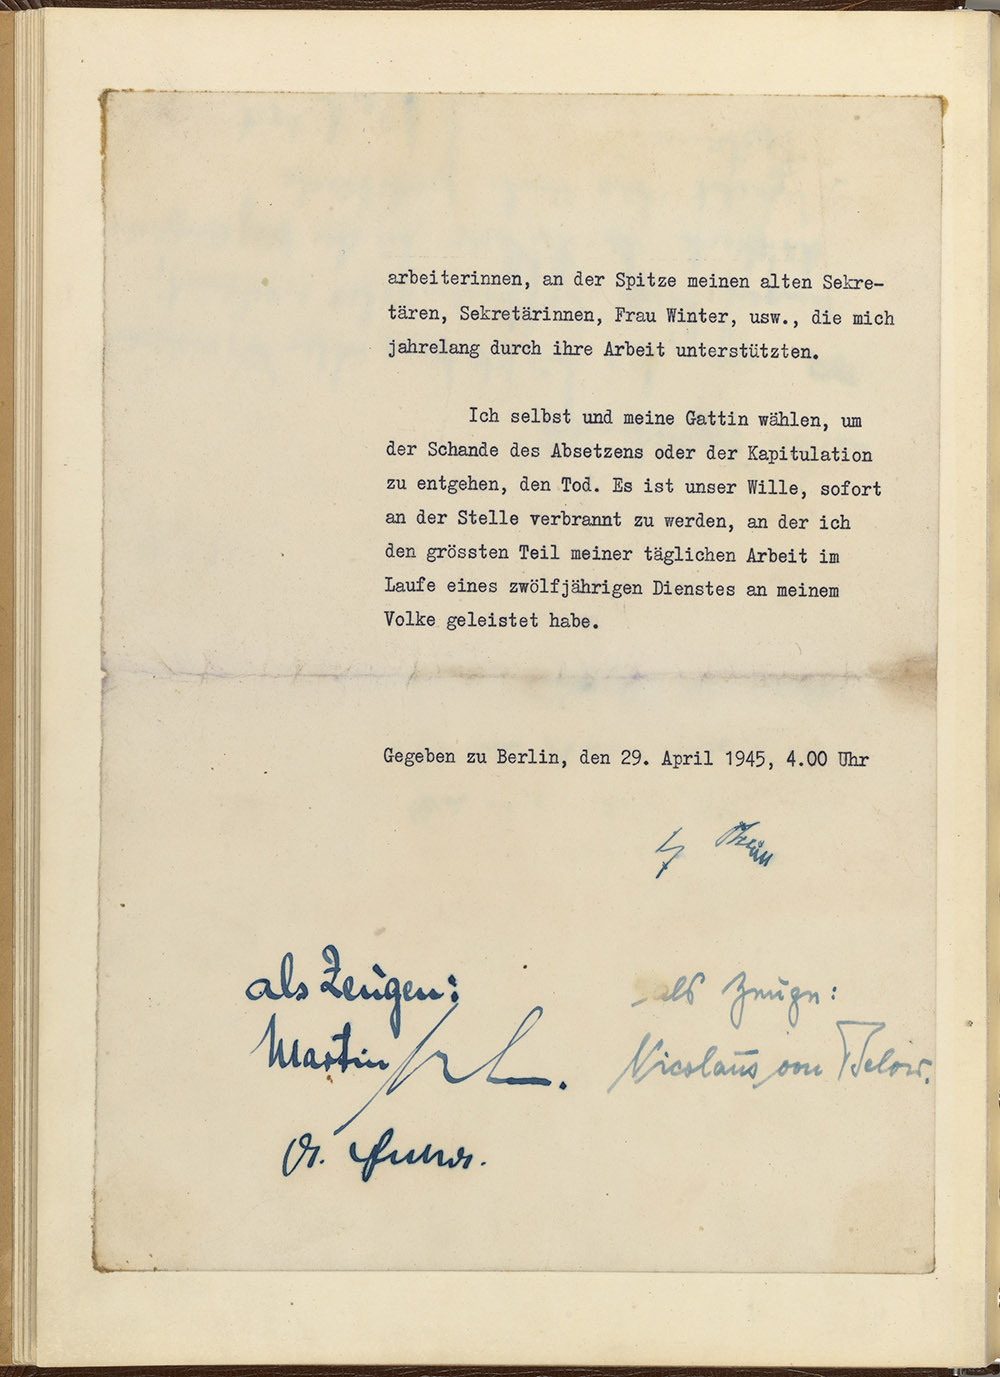 Last page of the last will and political testament of Adolf Hitler, signed at the Führerbunker in Berlin on April 29, 1945.